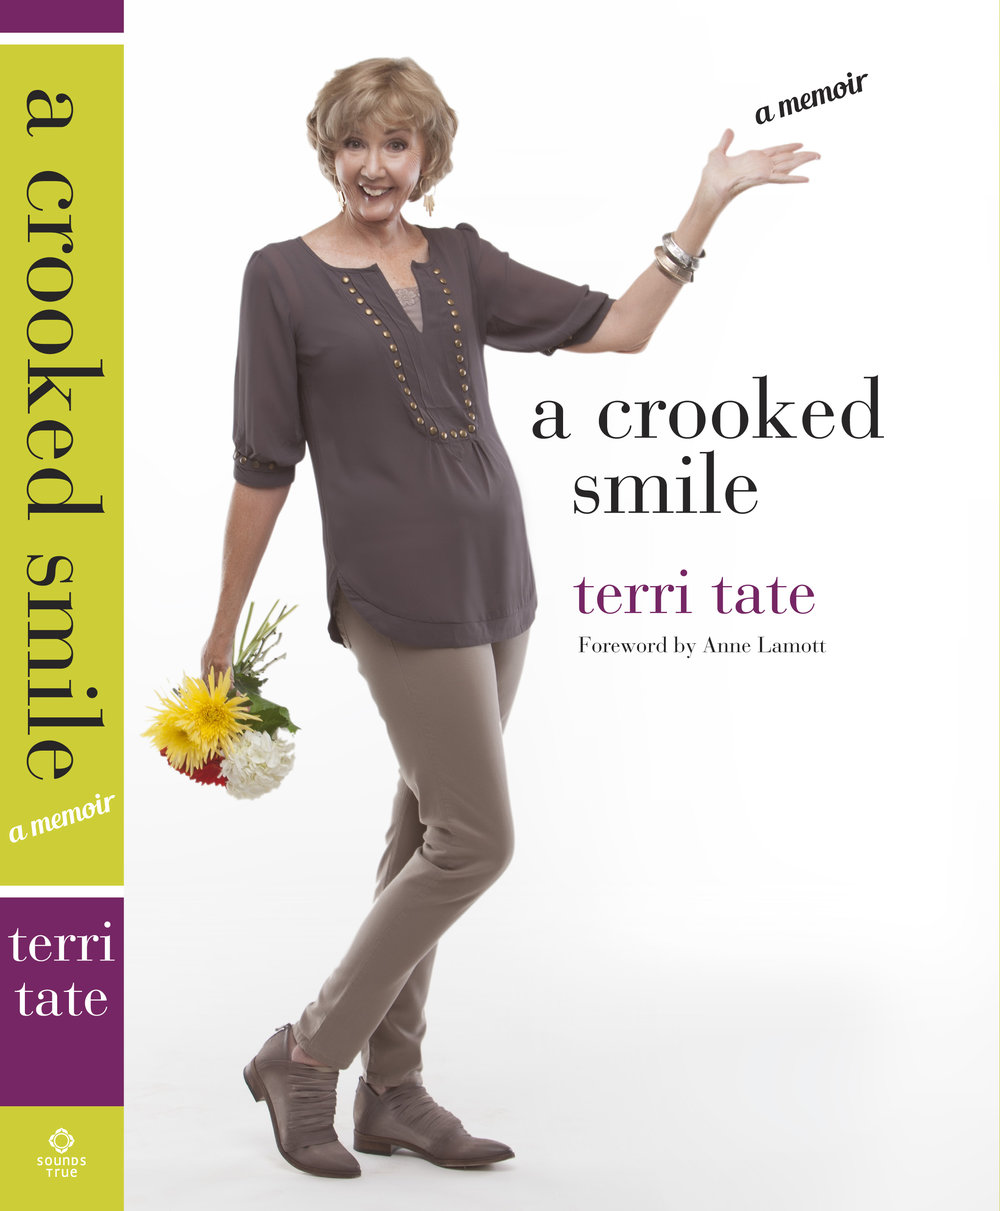 crookedsmile_cover.jpg